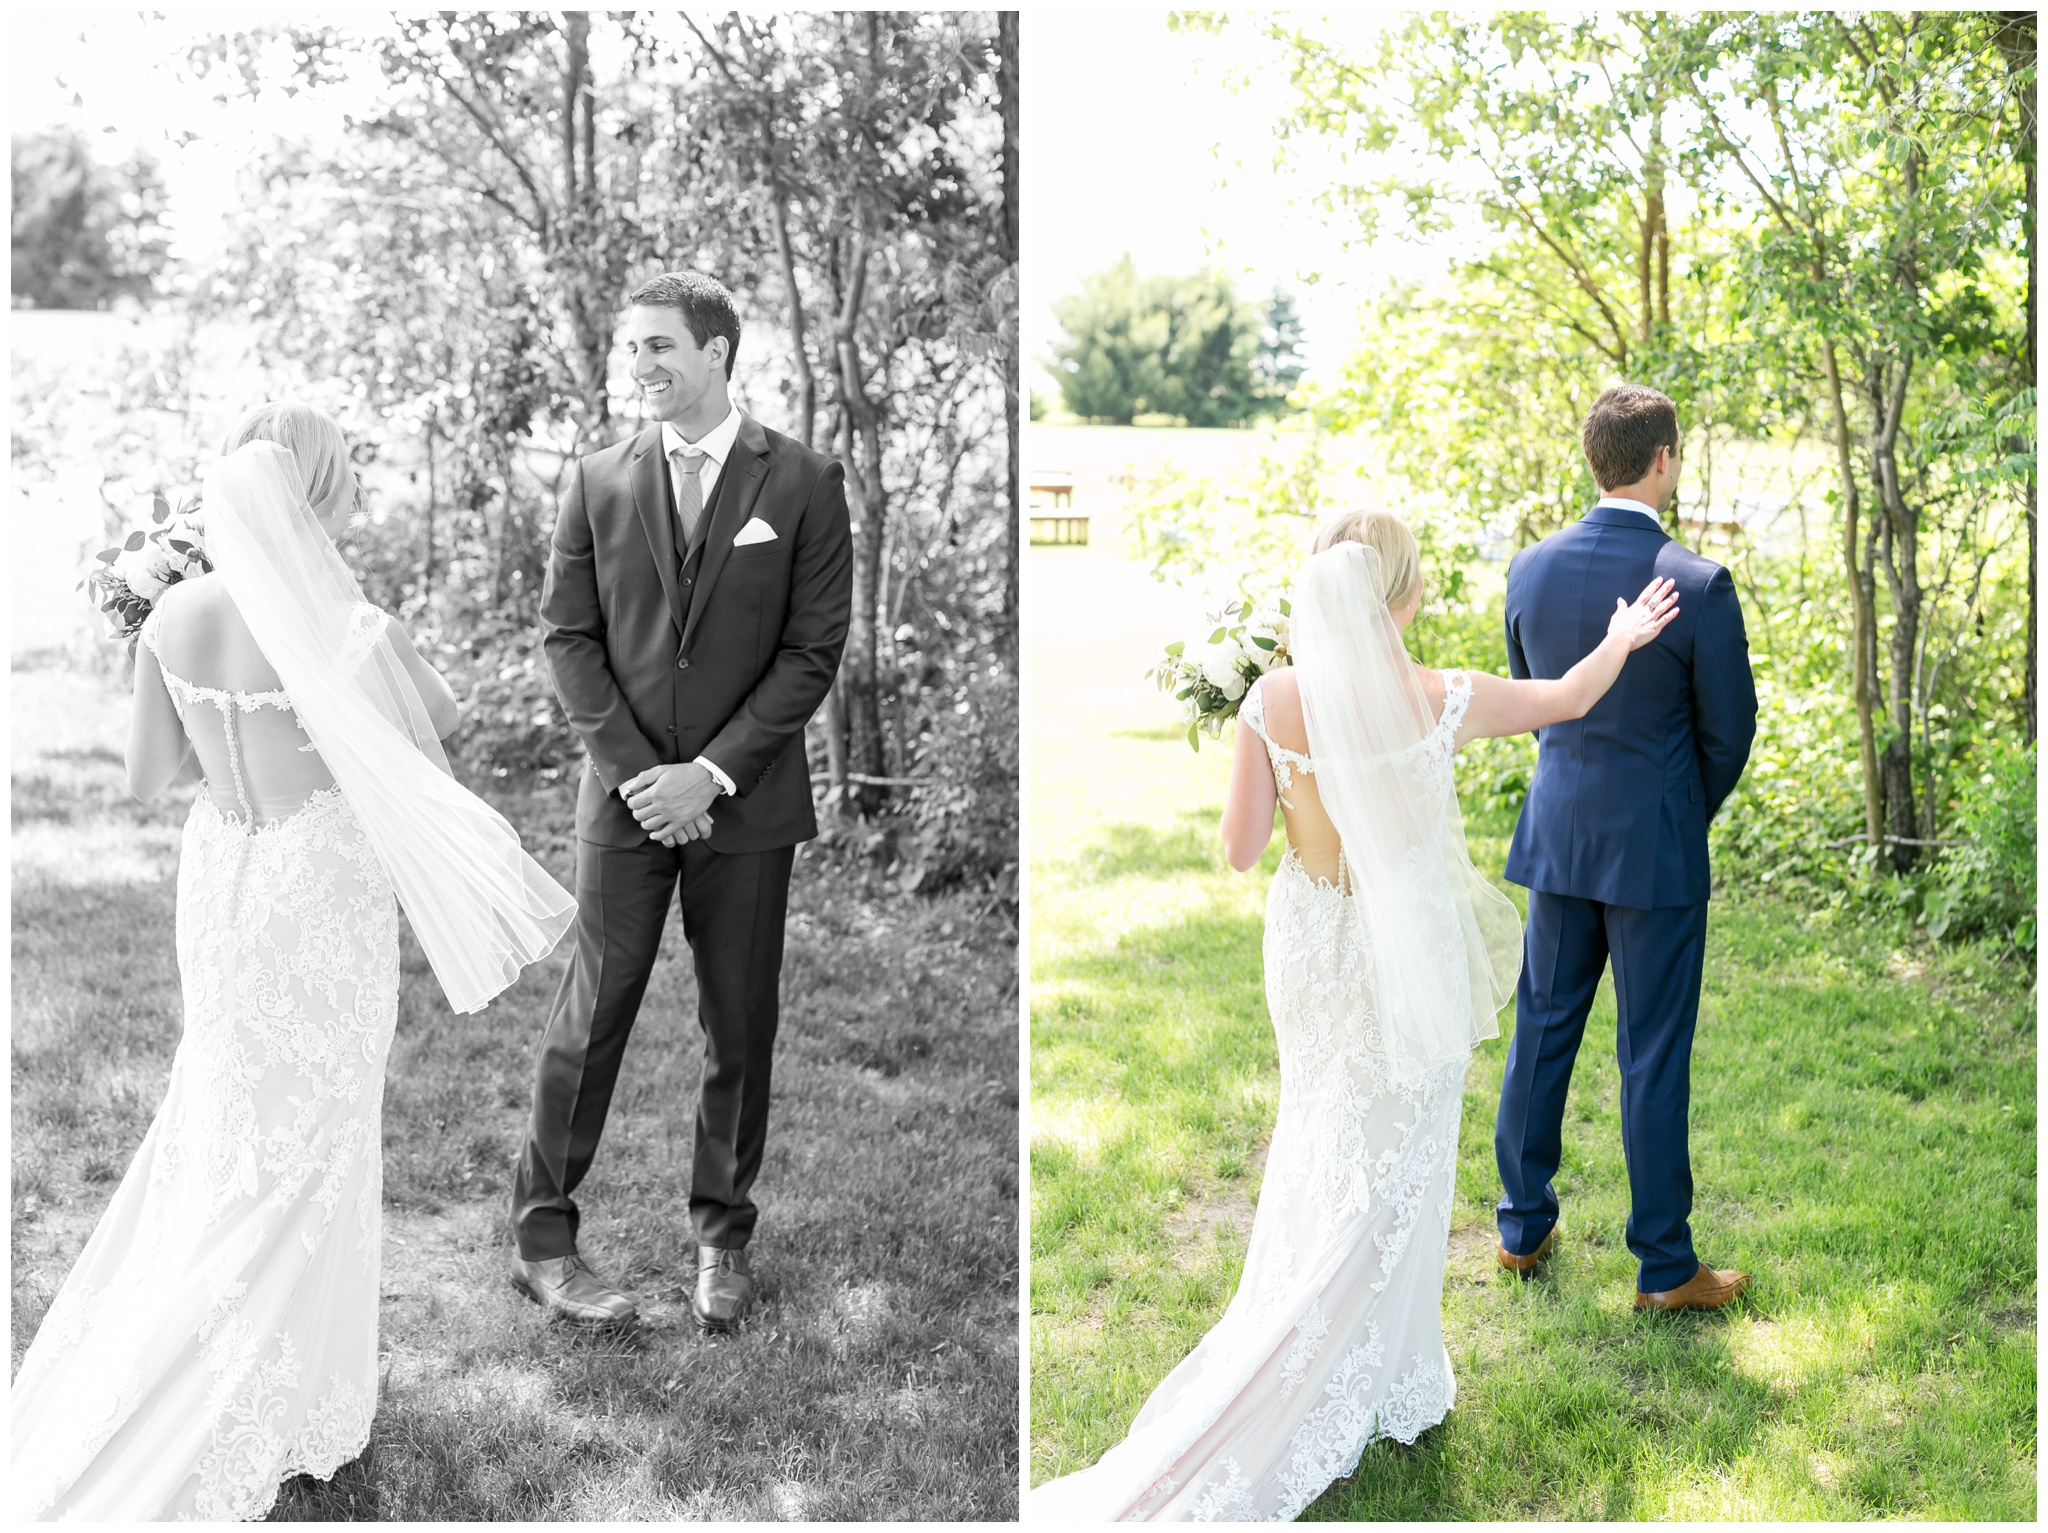 private_estate_wedding_stoughton_wisconsin_wedding_caynay_photo_3833.jpg